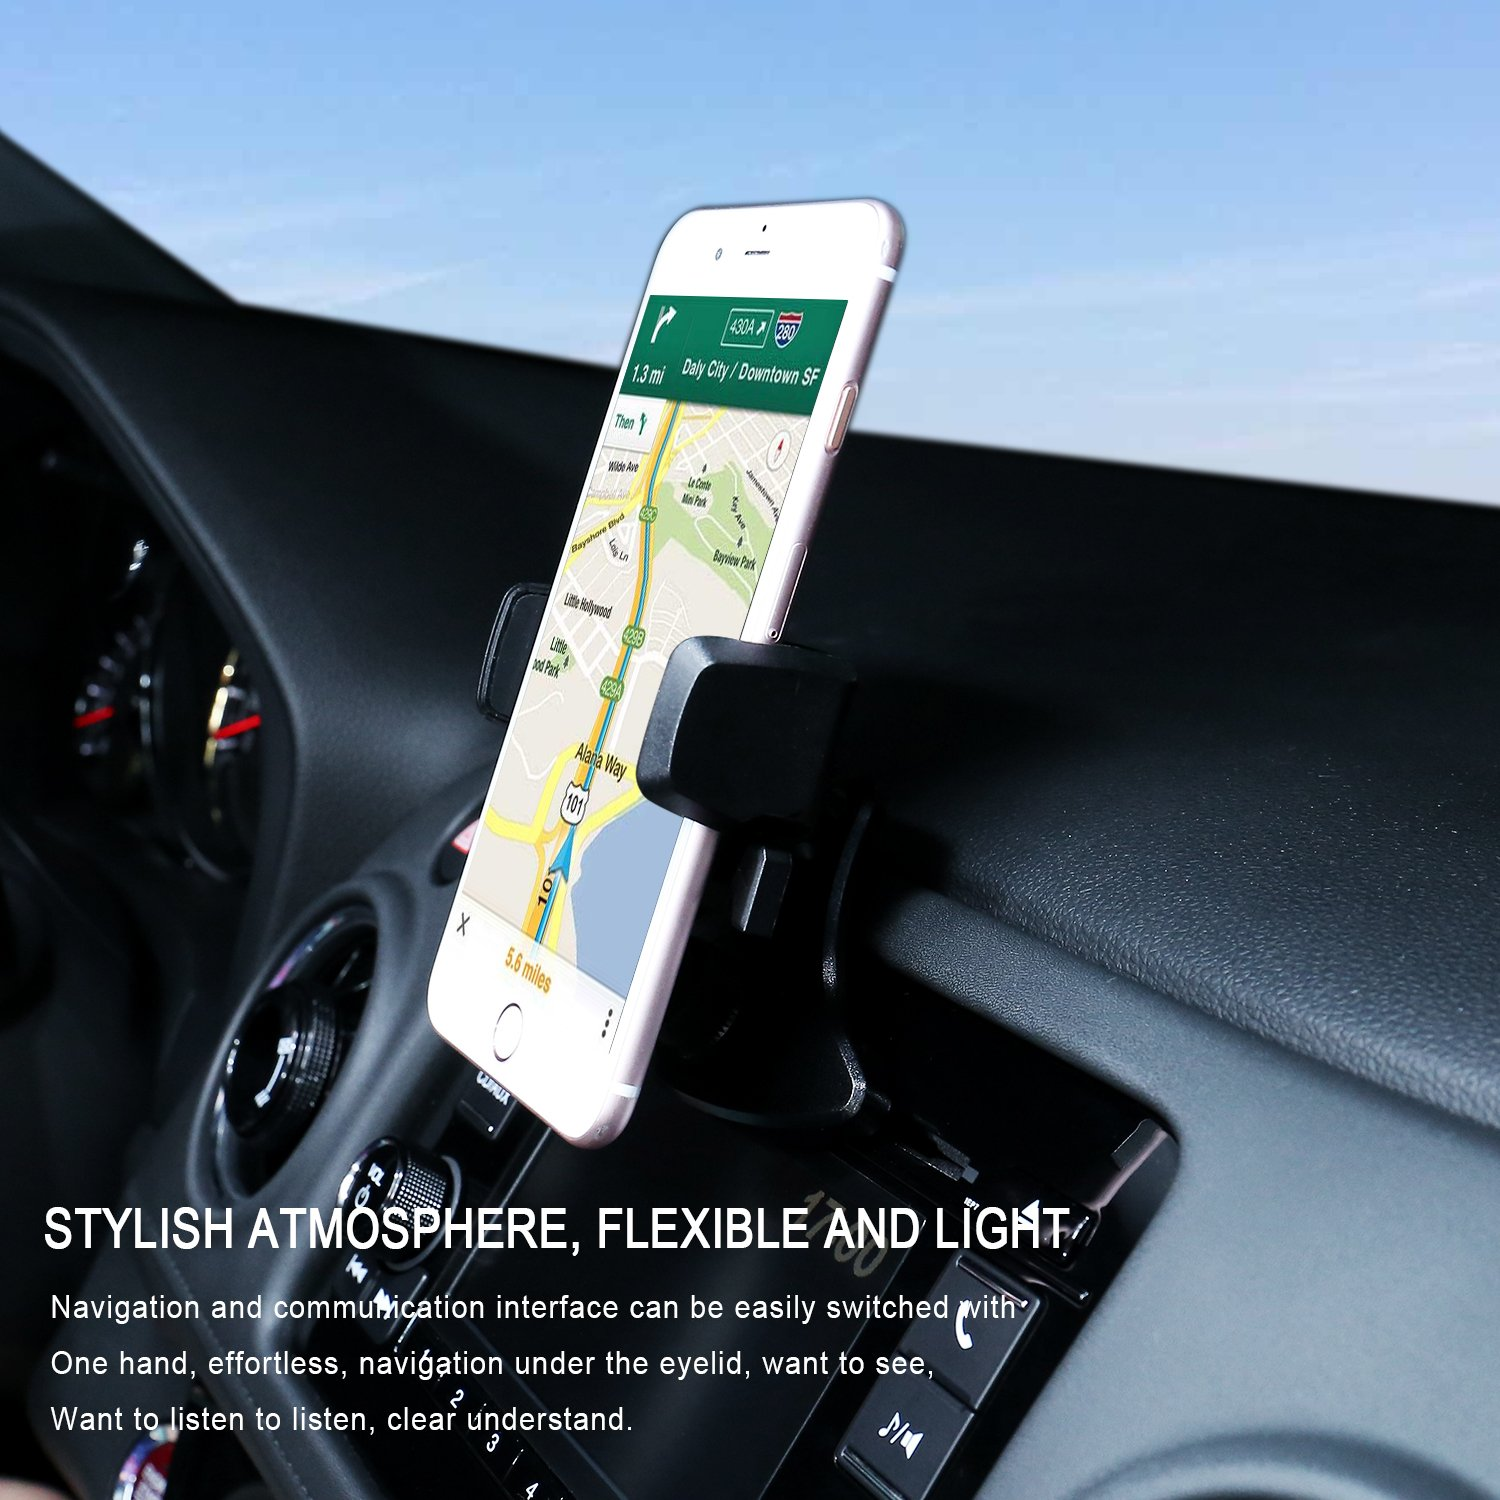 Galaxy S5//S6//S7//S8 Huawei and More 4327094130 Google  Nexus Veneibe Car Phone Holder,CD Slot Car Phone Mount Universal Car Cradle Mount with and One Touch Design for iPhone X//8//8P//7//7P//6s//6P//5S LG